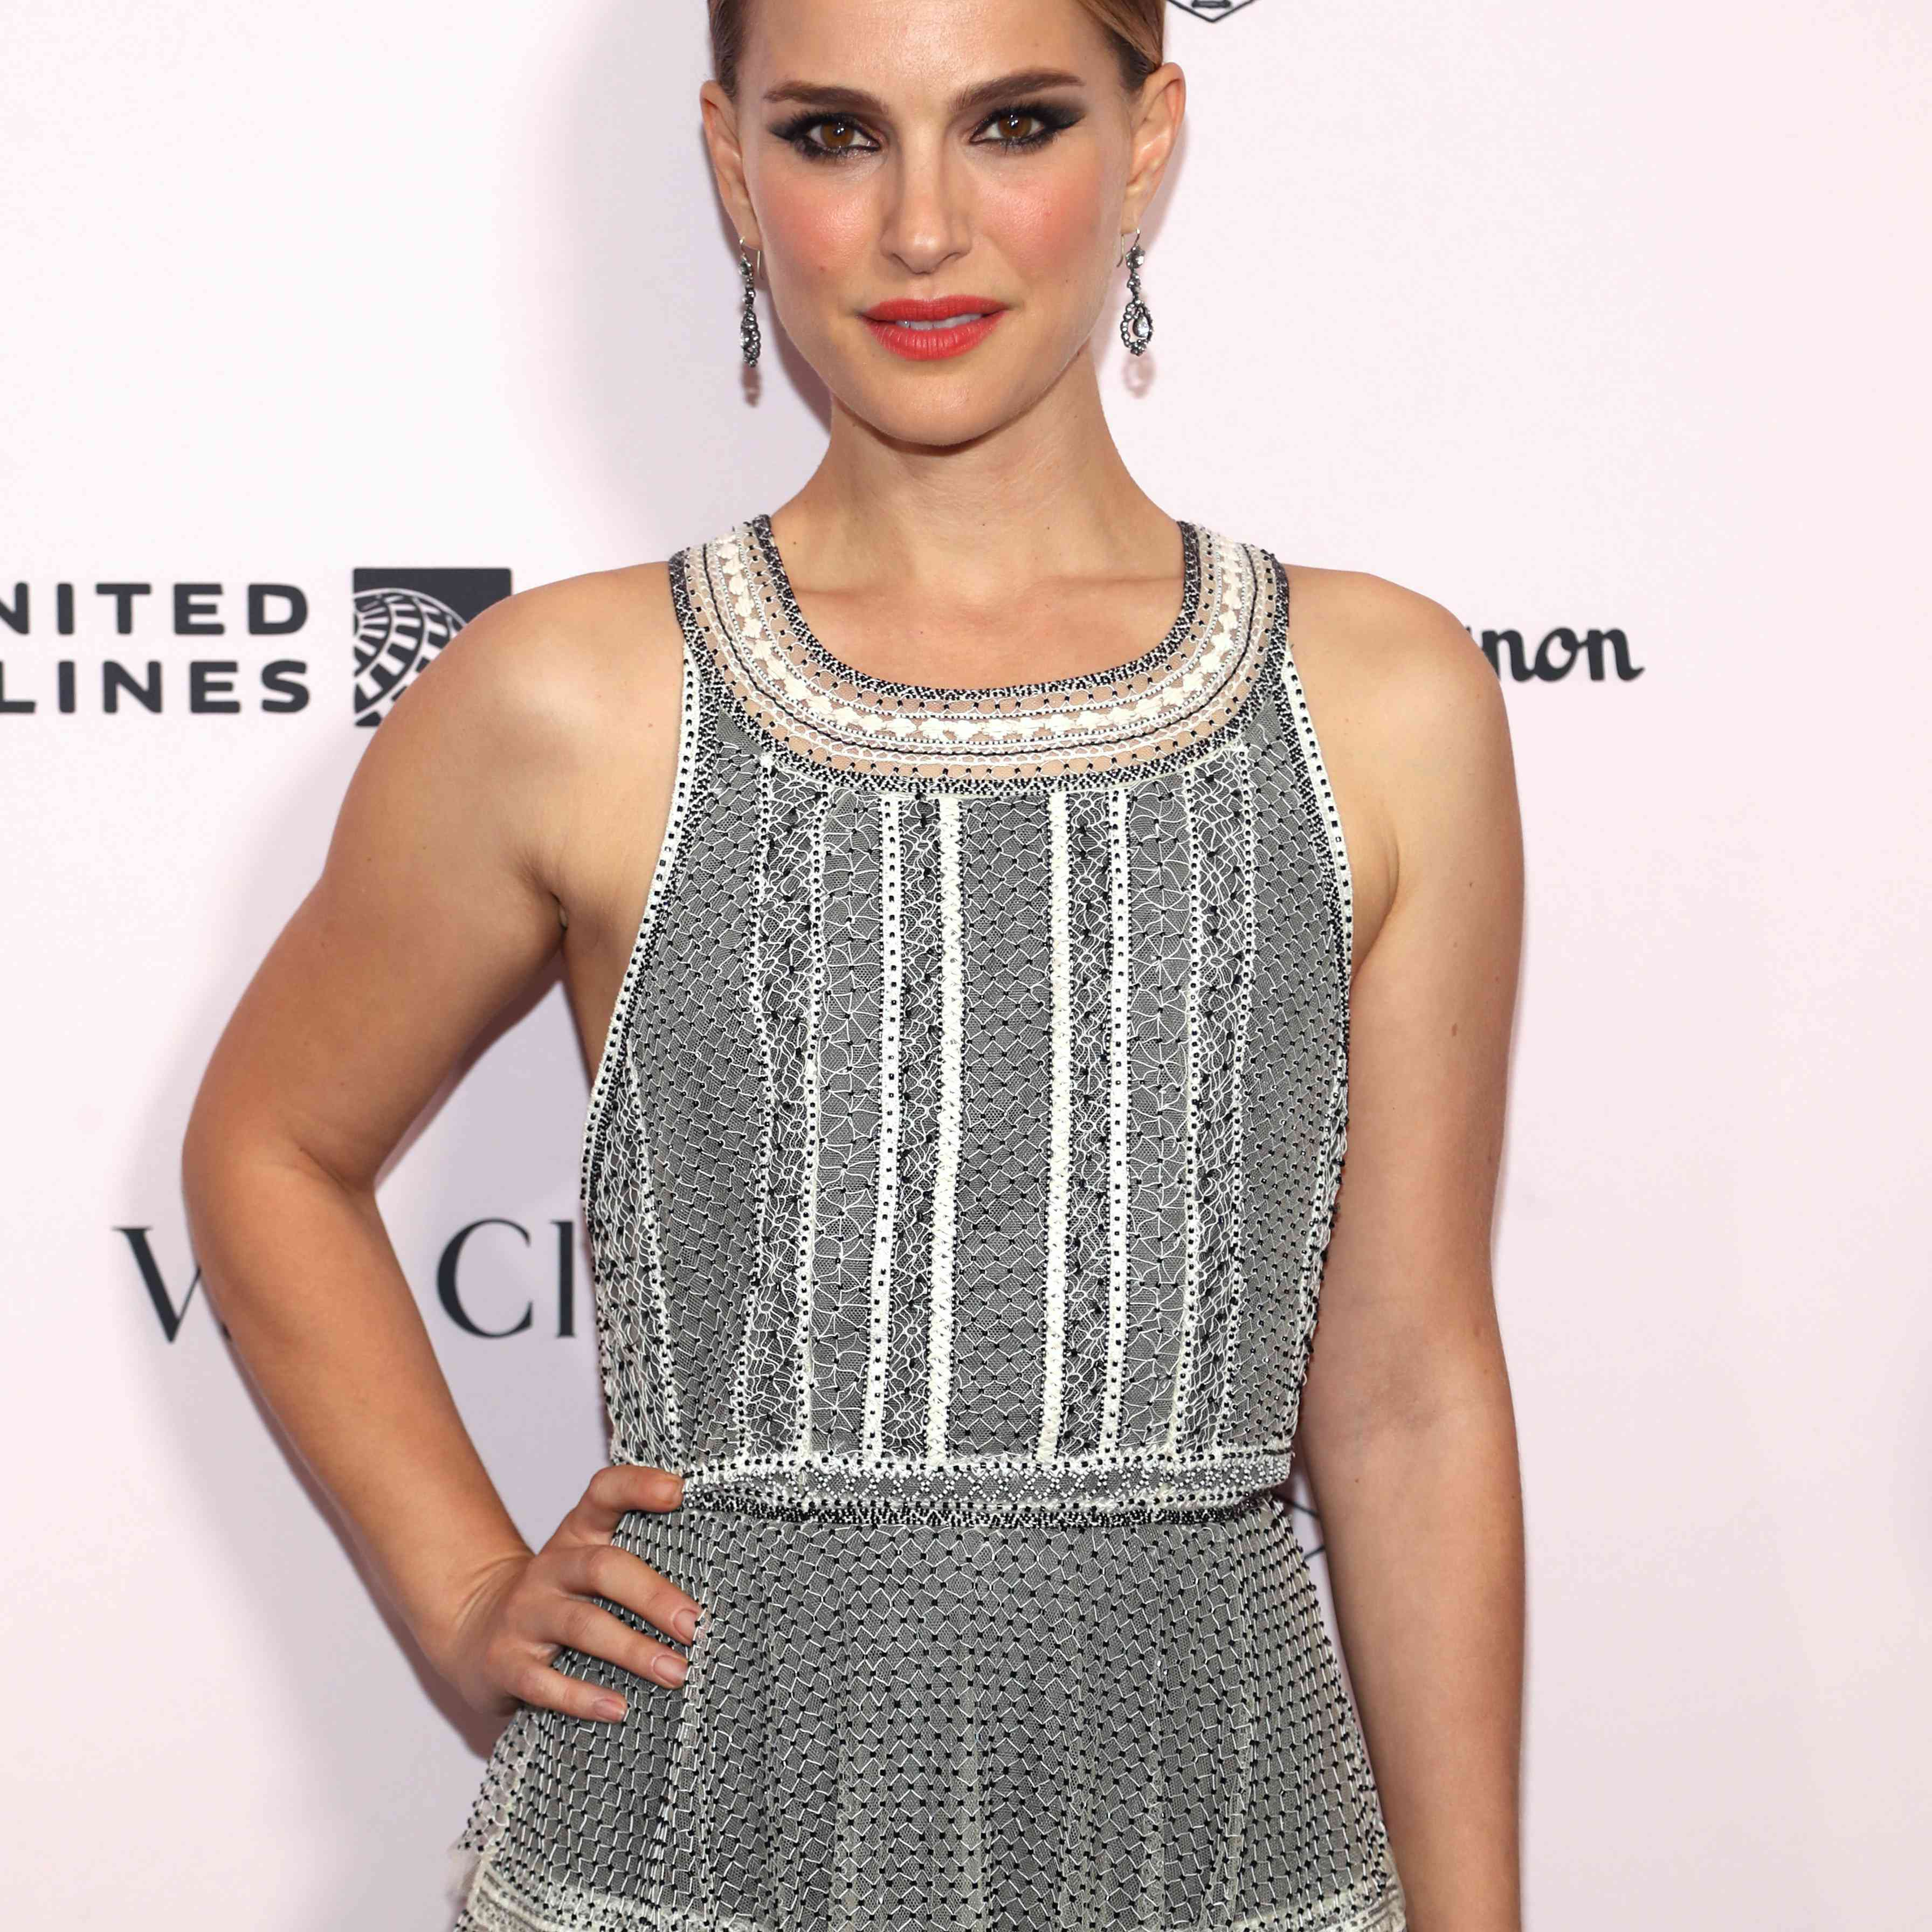 Natalie Portman posing on the red carpet at the 2019 LA Dance Project Gala hosted by Dom Pérignon